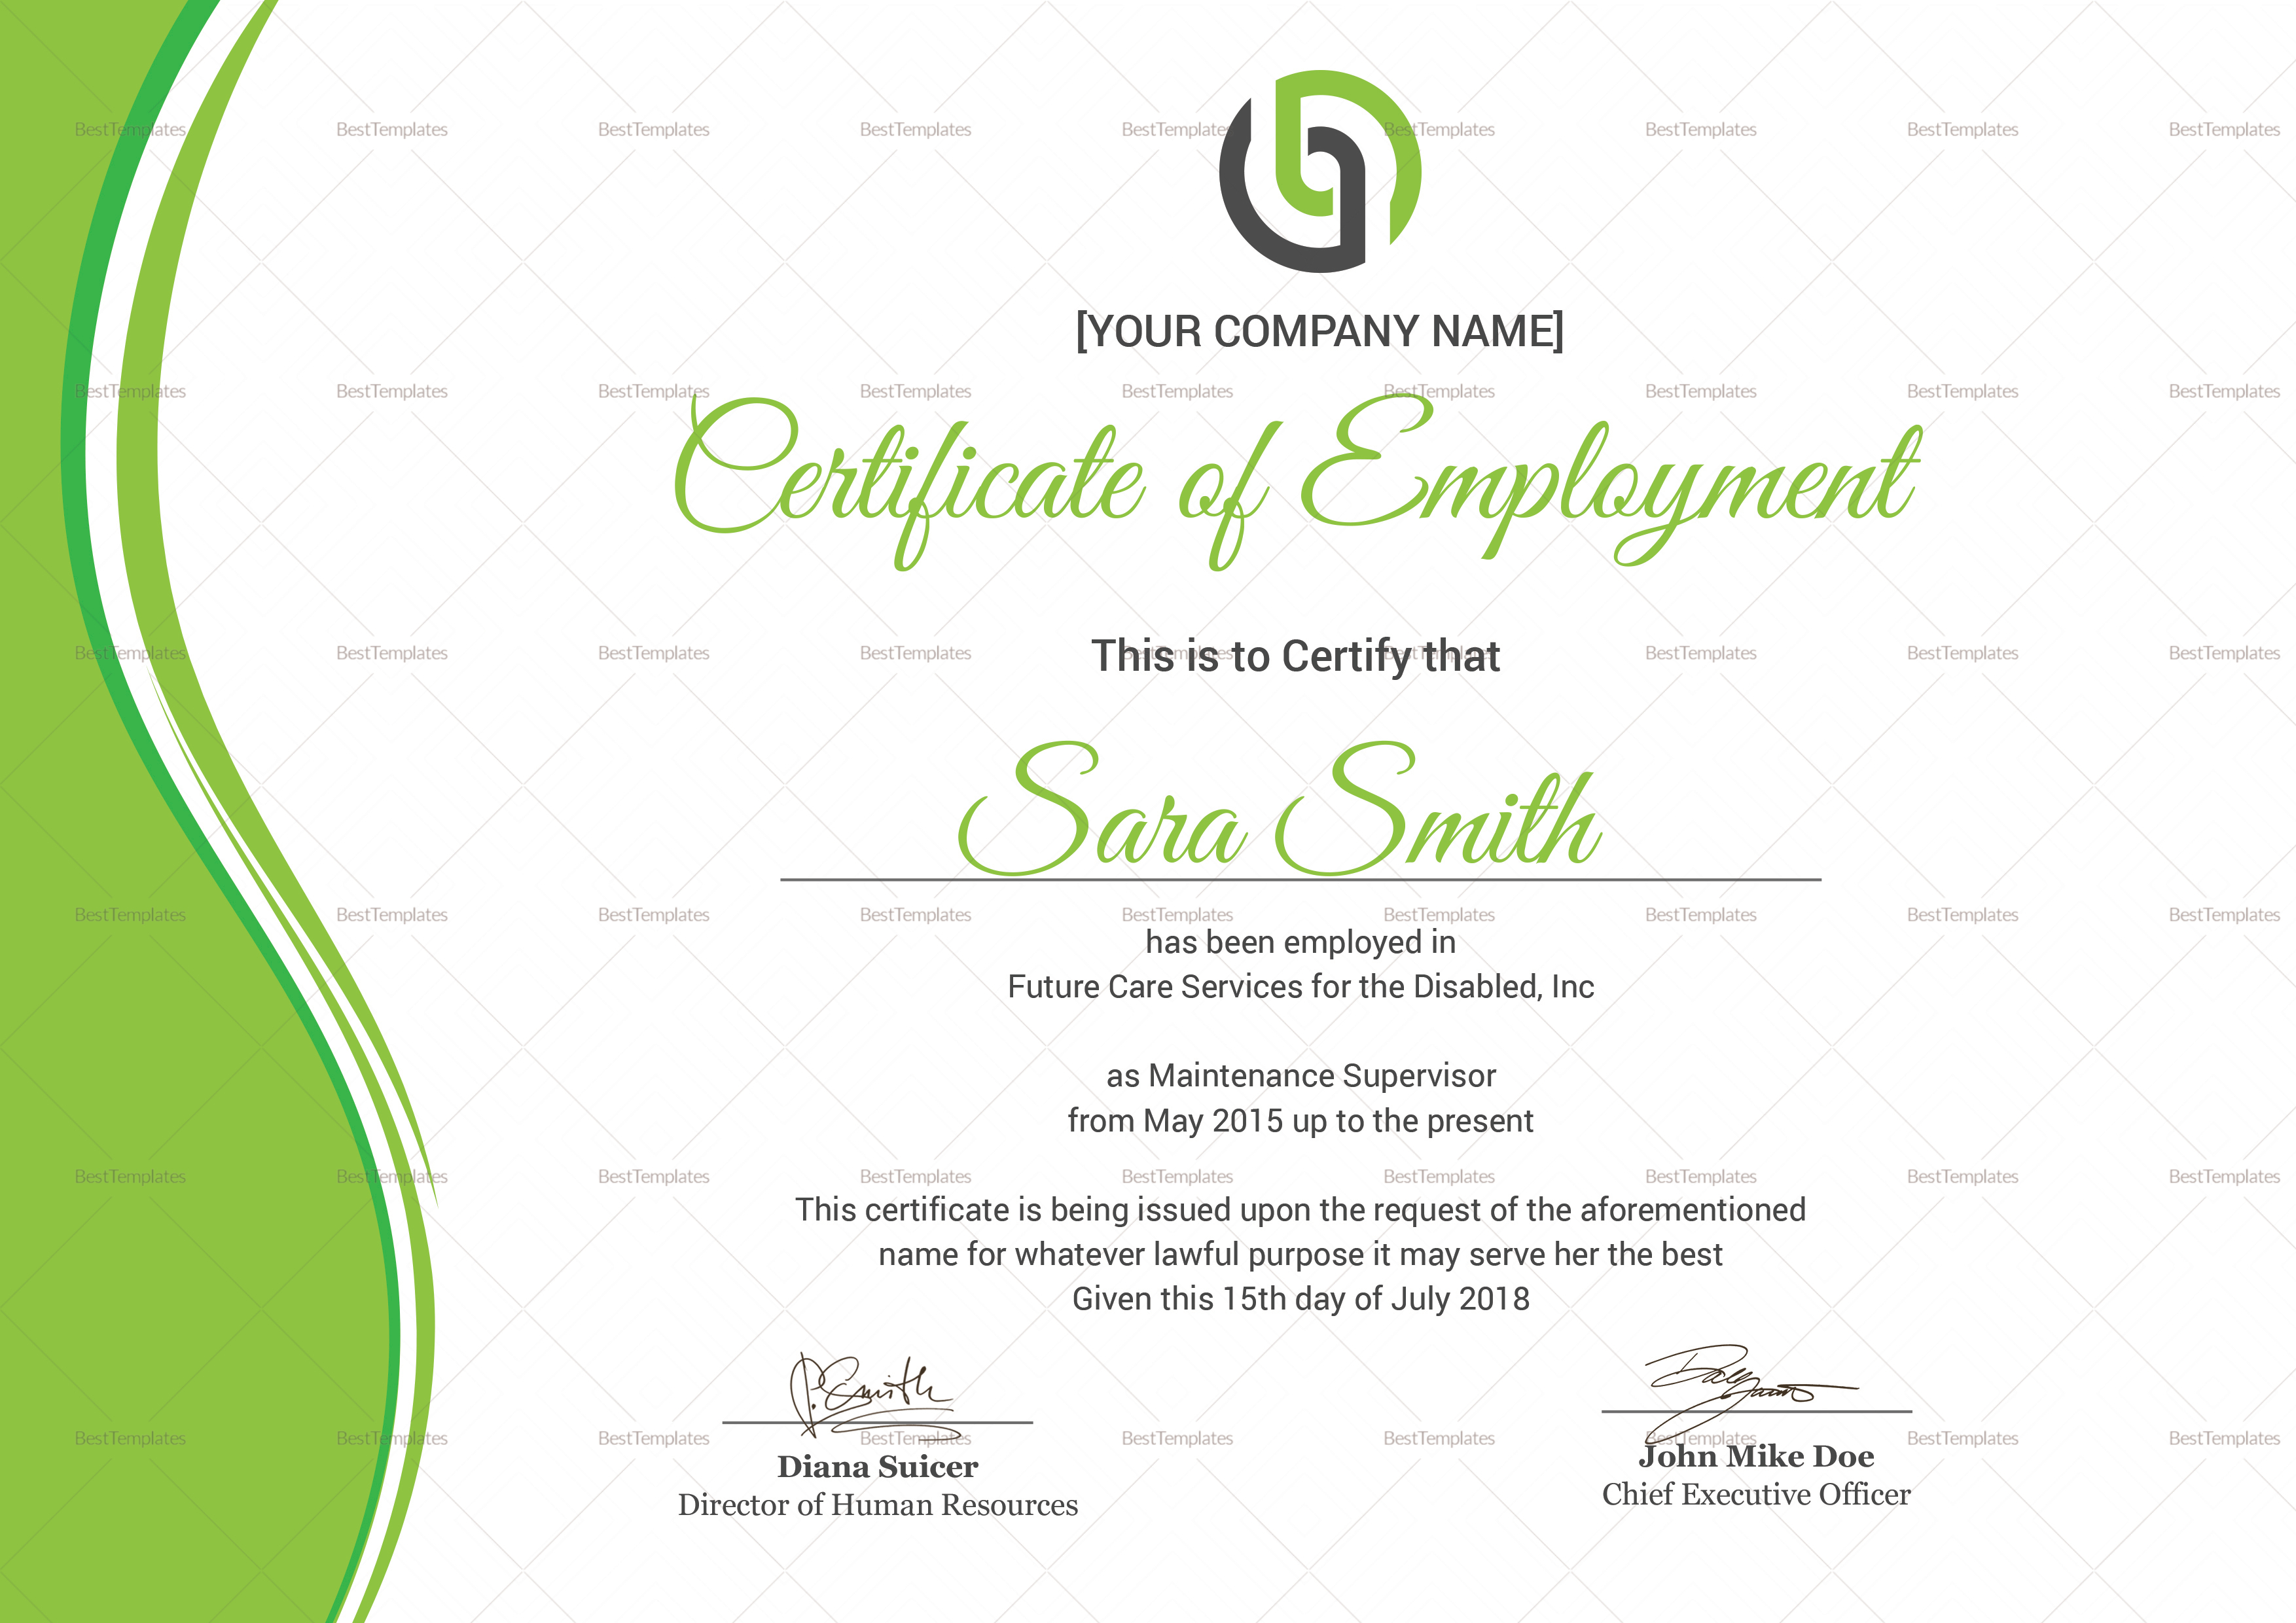 Specialized Employment Certificate Template